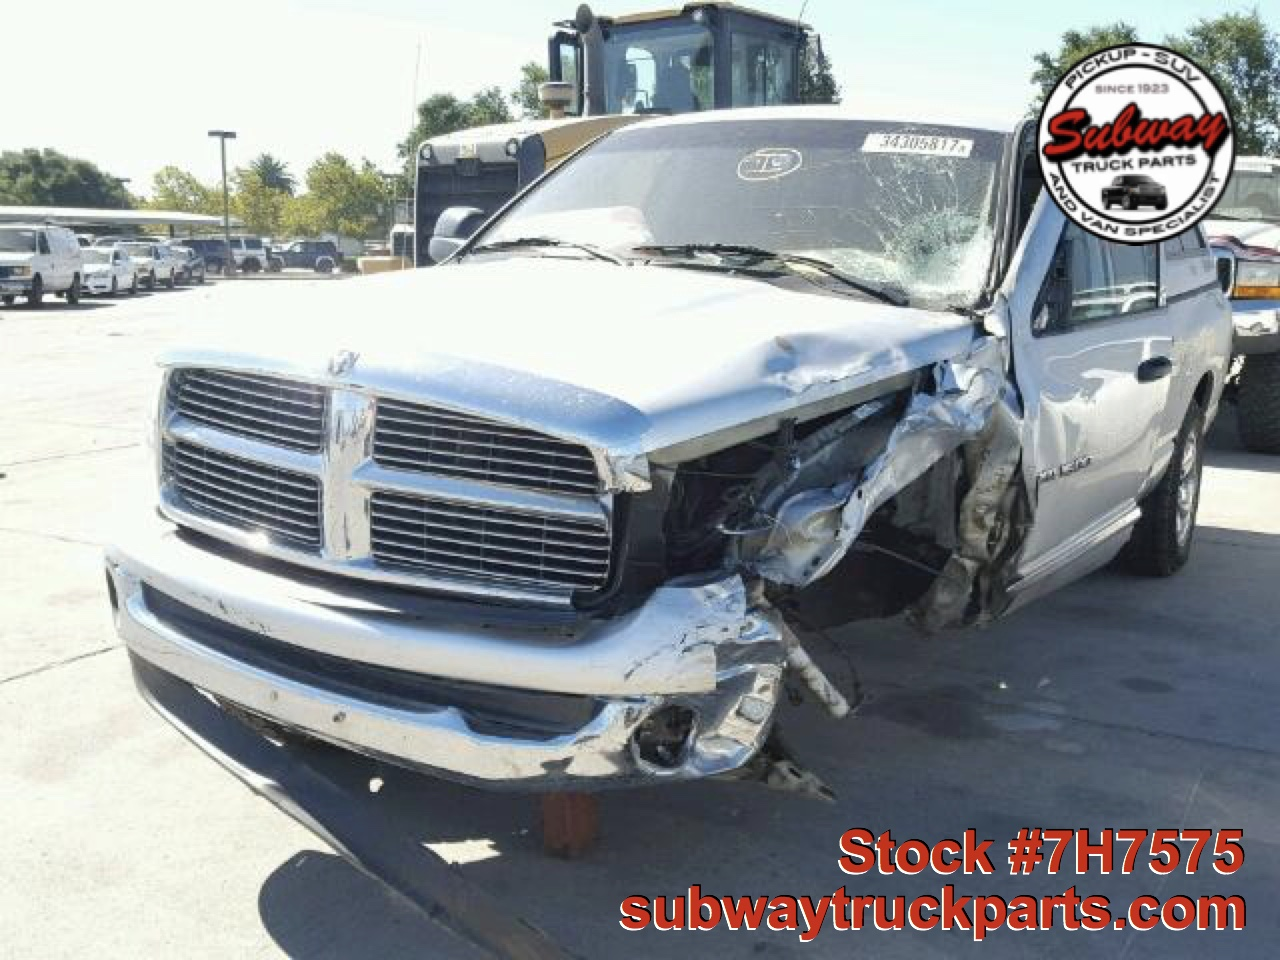 used parts 2005 dodge ram 5 7l laramie 4x4 subway truck parts inc auto recycling since 1923. Black Bedroom Furniture Sets. Home Design Ideas